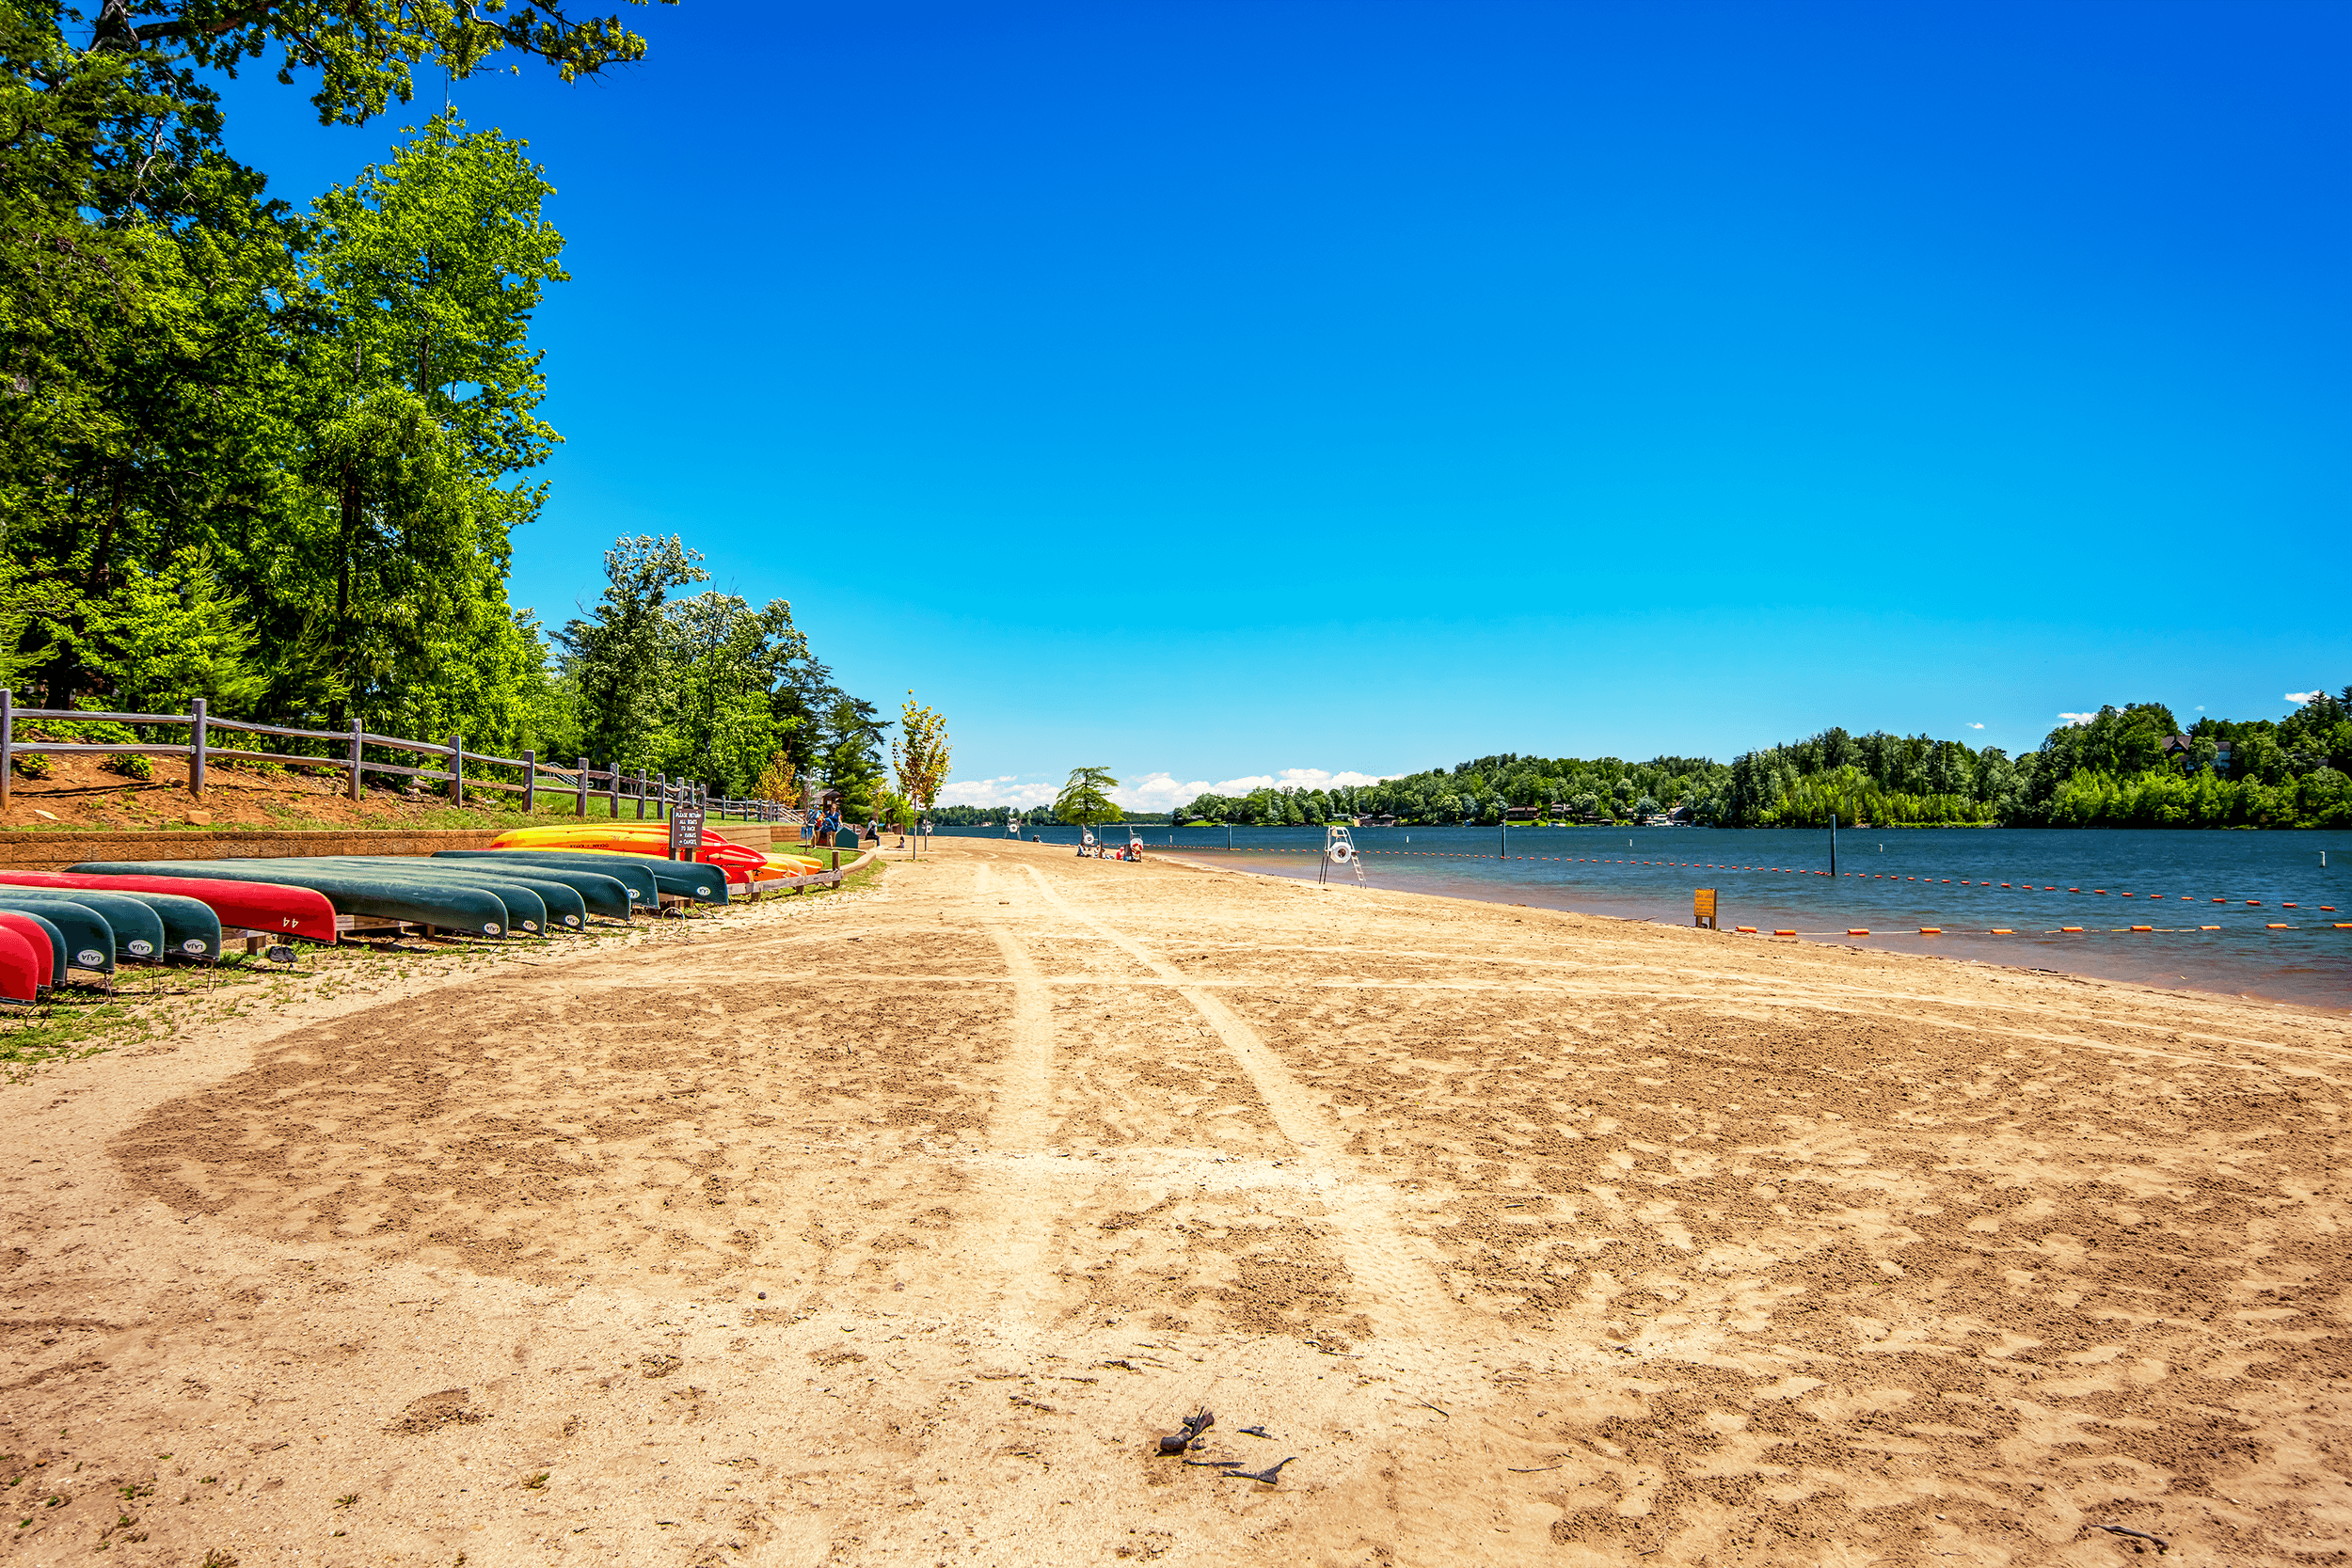 From May to September, the beach is open for swimming in the lake. When lifeguards are on duty, there is a small fee to swim. Between Memorial Day and Labor Day, canoes and kayaks are available for rent near the concession stand.